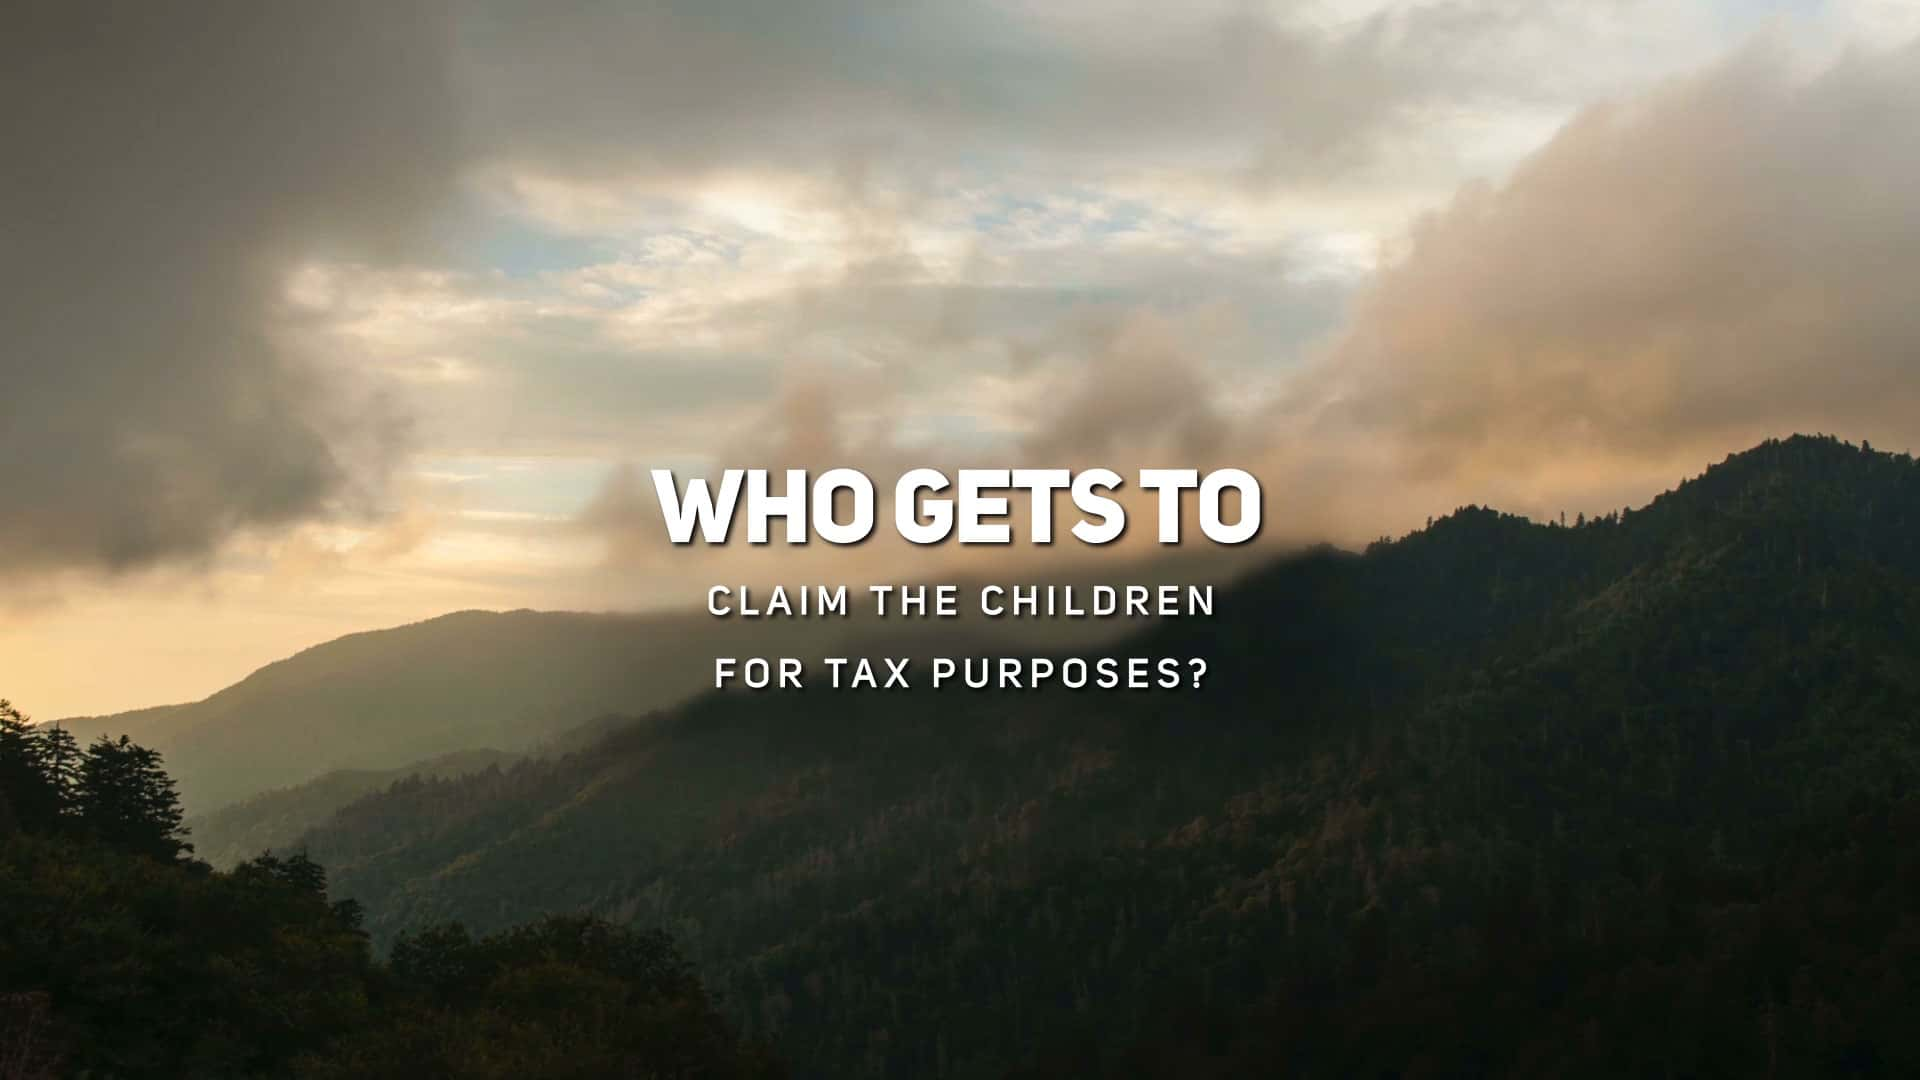 Who Gets to Claim the Children for Tax Purposes